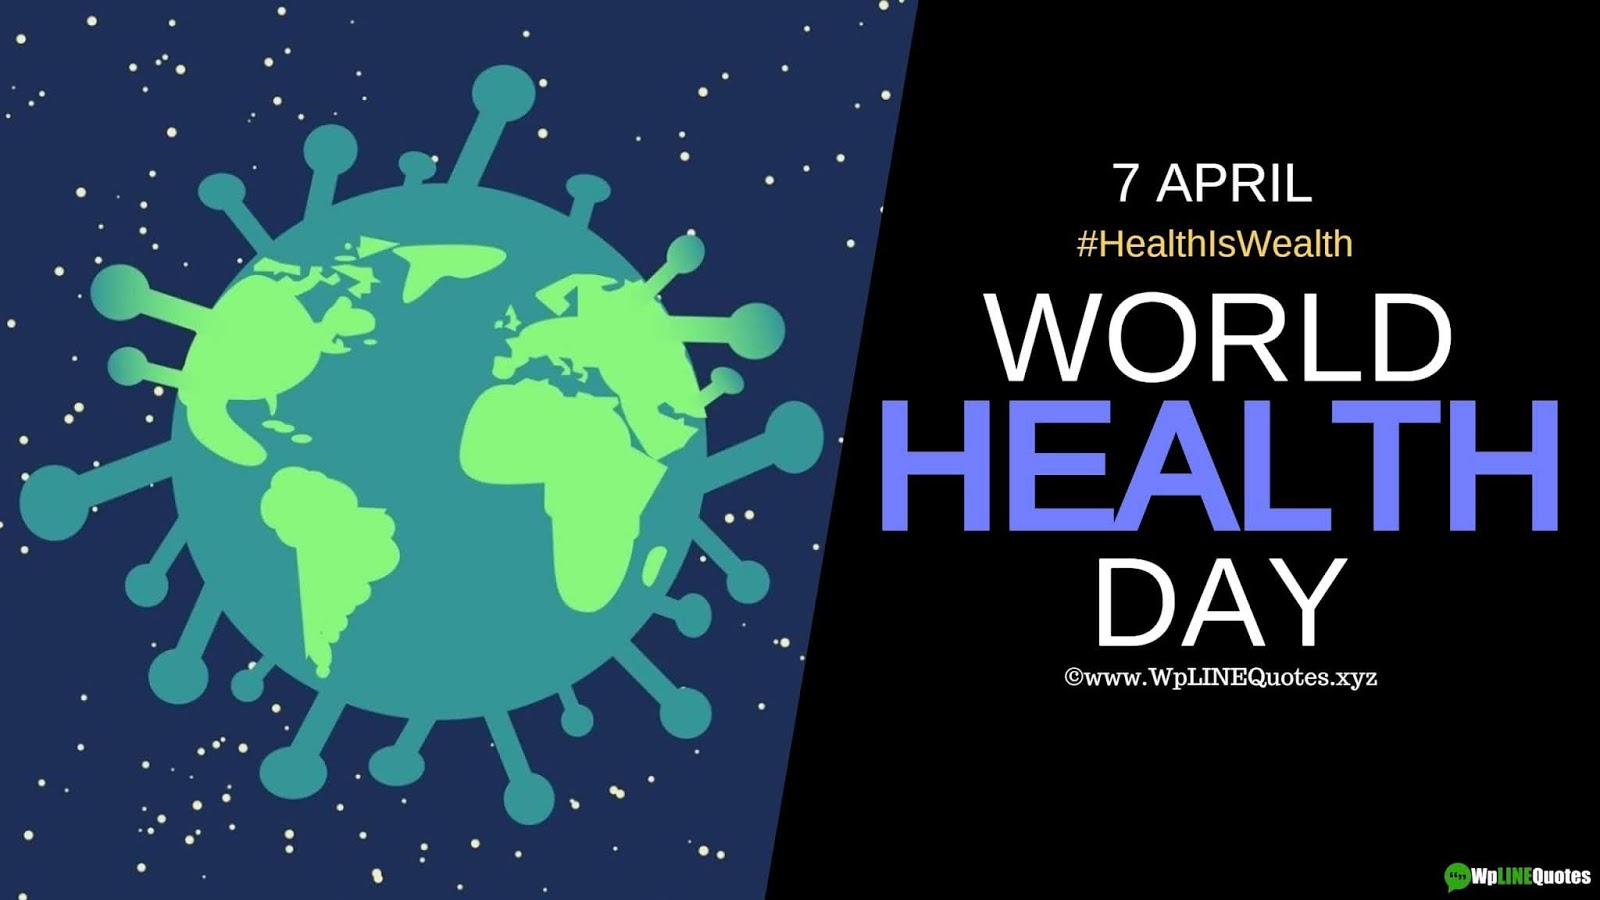 World Health Day Quotes, Wishes, Slogan, Message, Theme, Facts, Images, Drawing For Whatsapp & Facebook